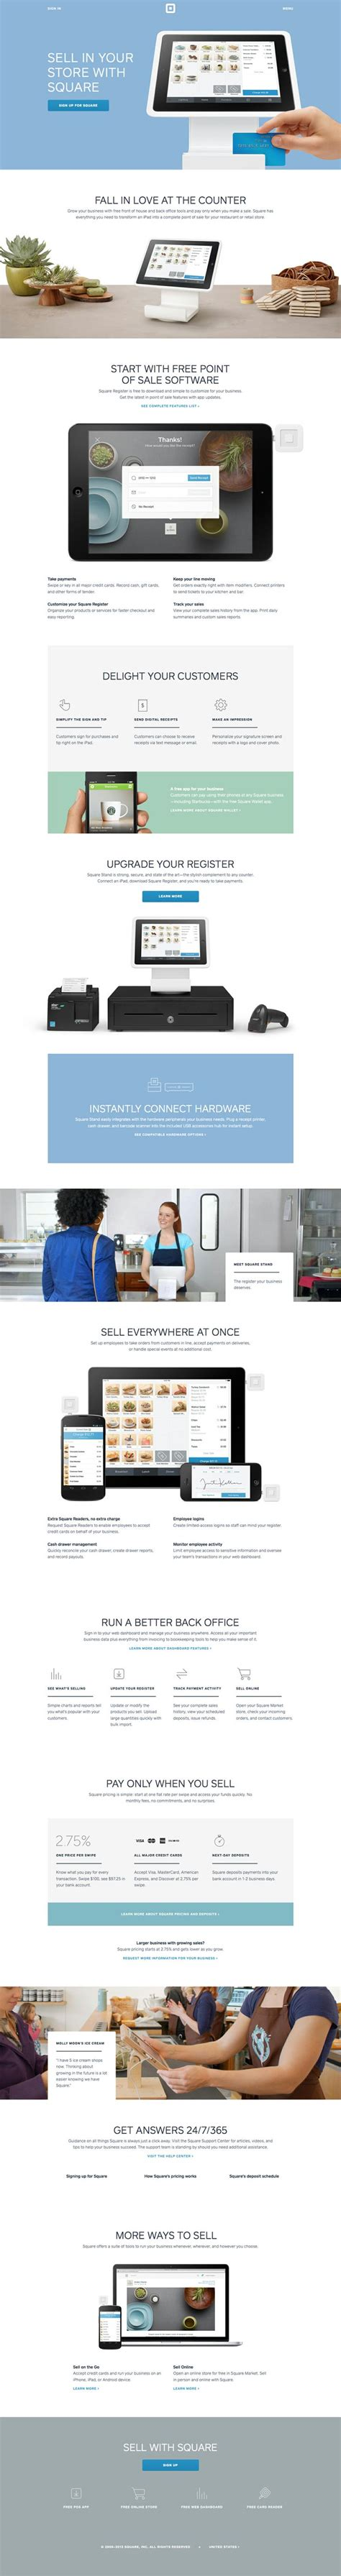 Square Pos Gift Cards - top 23 ideas about point of sale on pinterest apples android and gift cards